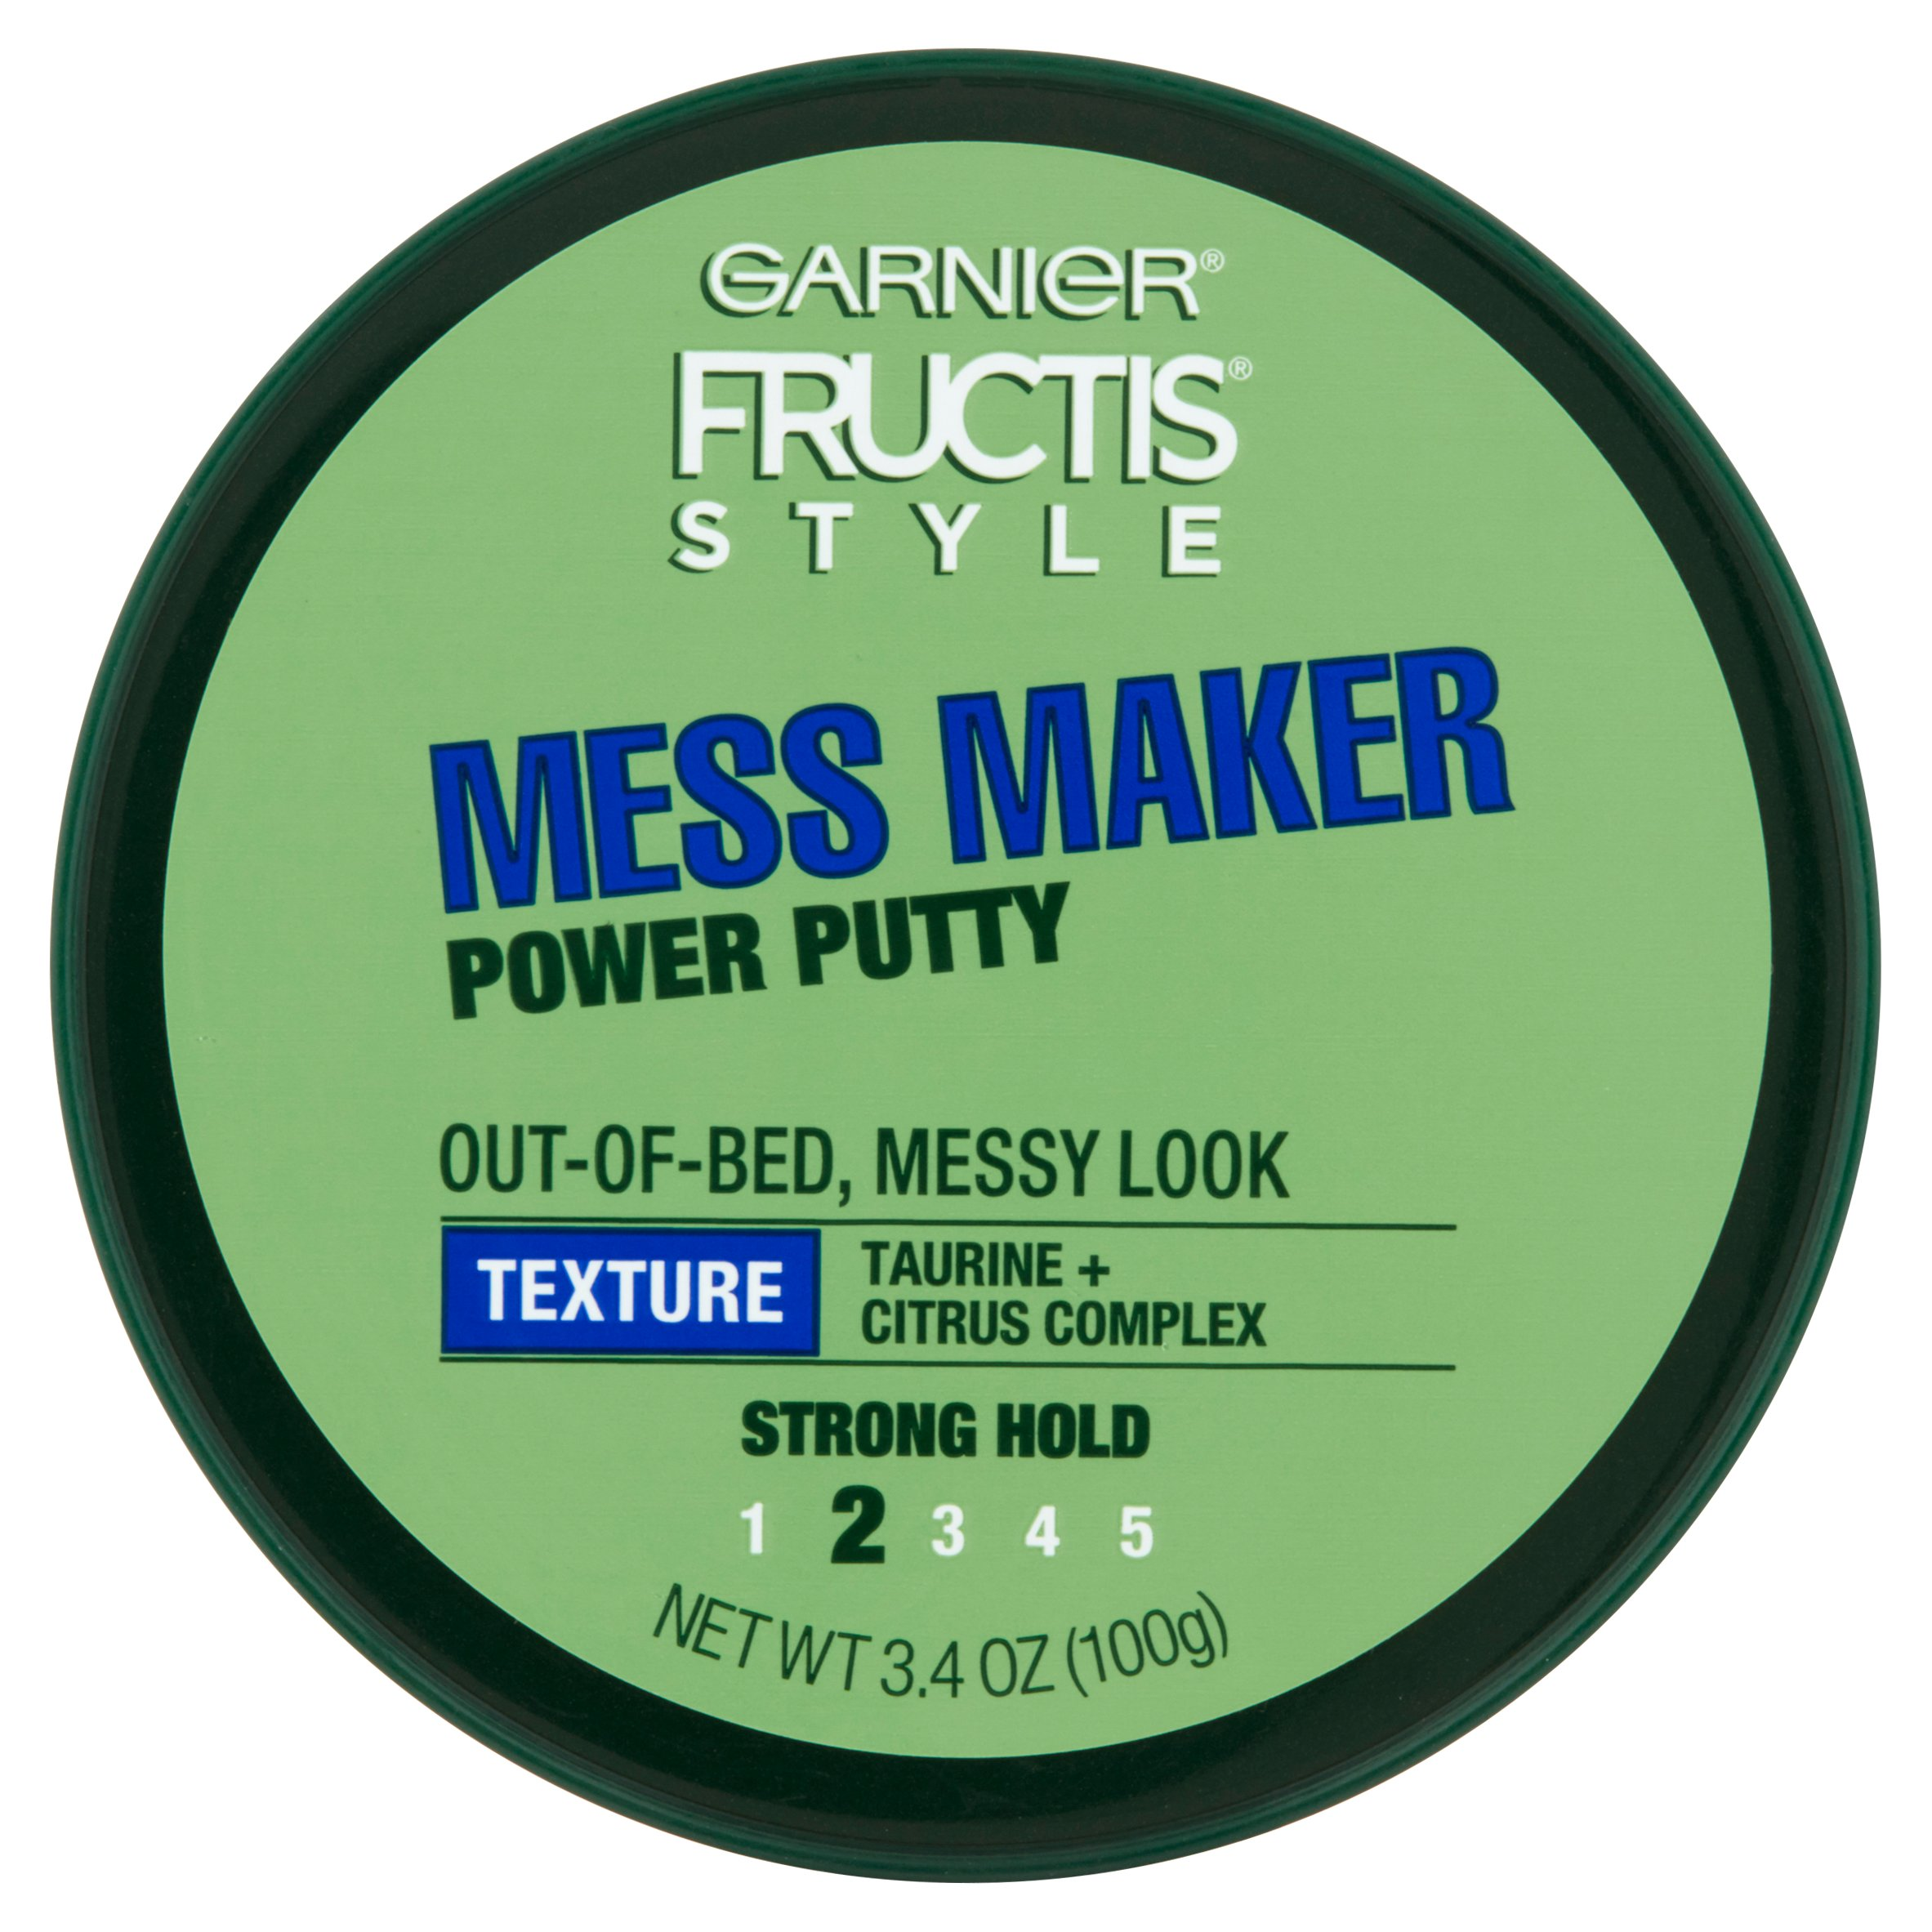 Garnier Fructis Style Mess Maker Power Putty, 3.4 oz